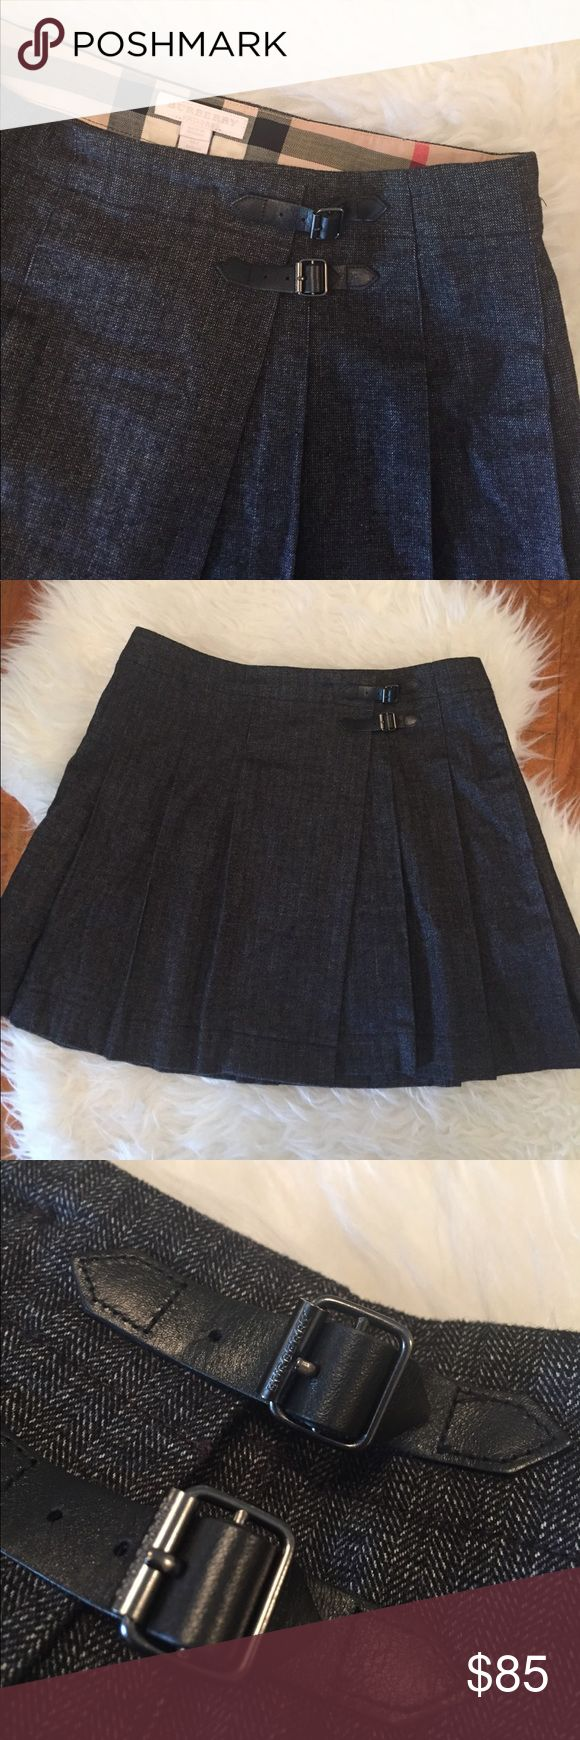 """Burberry Herringbone Pleated Kilt Skirt Authentic, like new condition Burberry skirt, girl's size 14.  No flaws.  70% cotton, 16% polyester.  Opens fully, button and buckle closure.  Buckle hardware have Burberry stamped on them.  Hidden adjustable elastic inside the waistband for a perfect fit.  16"""" long.  This is a girls size 14, would fit like a woman's extra small.  I'll provide more measurements if needed. Burberry Bottoms Skirts"""